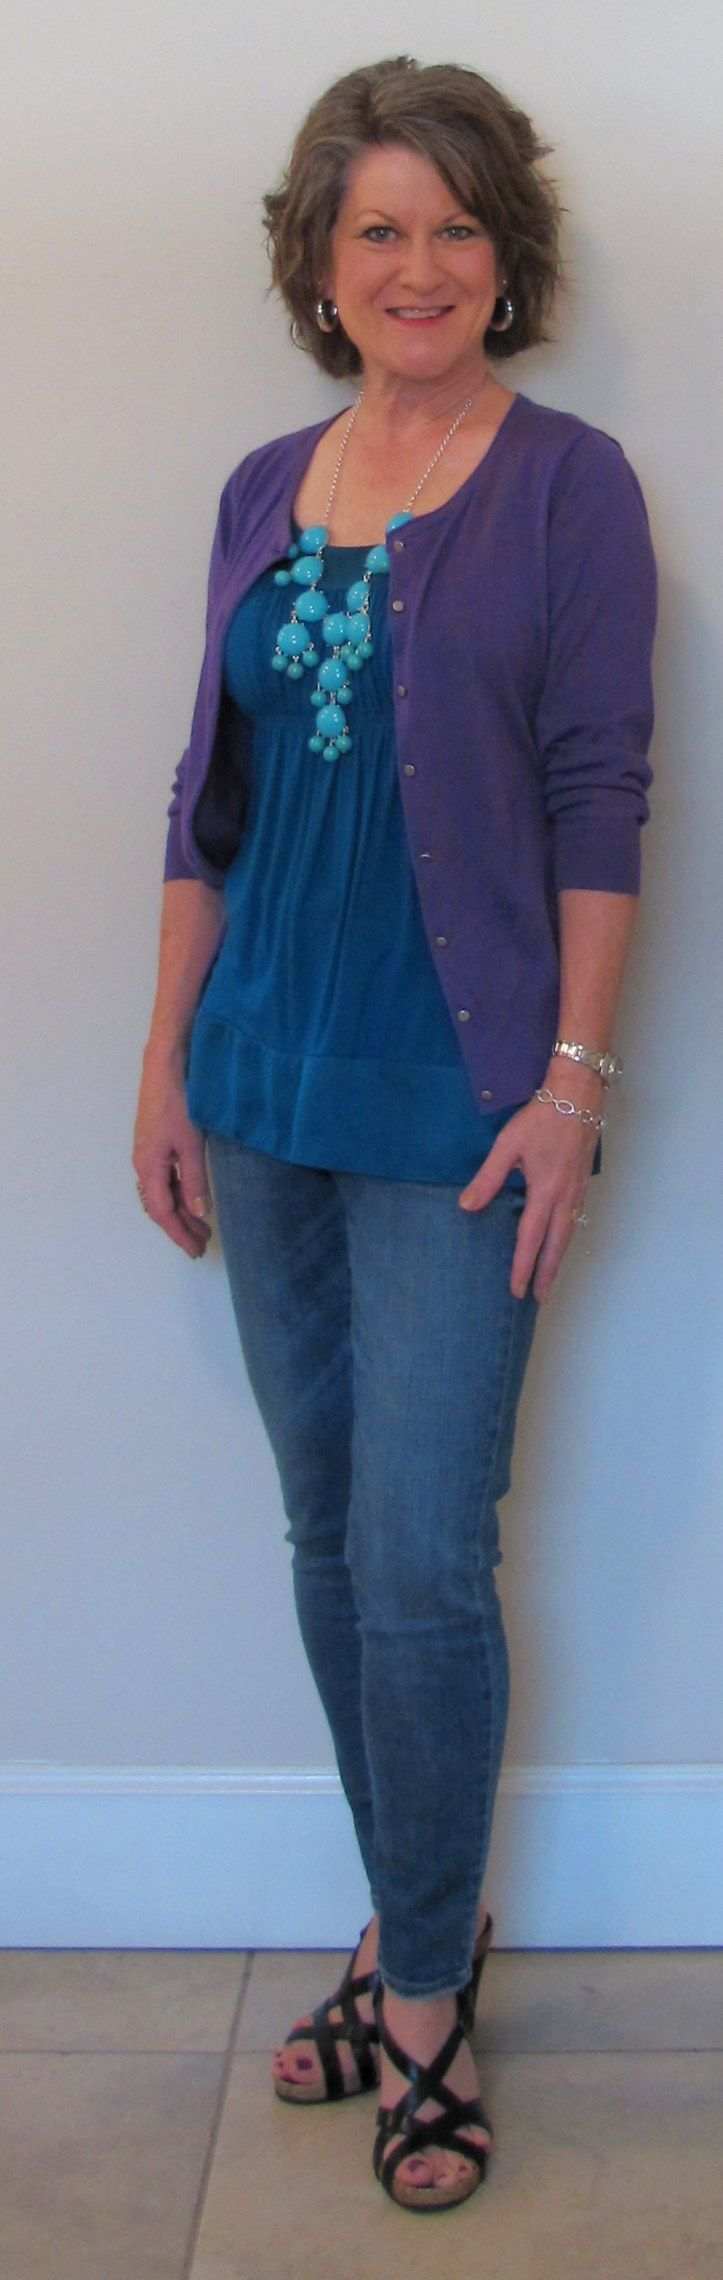 Clothing for women over 70